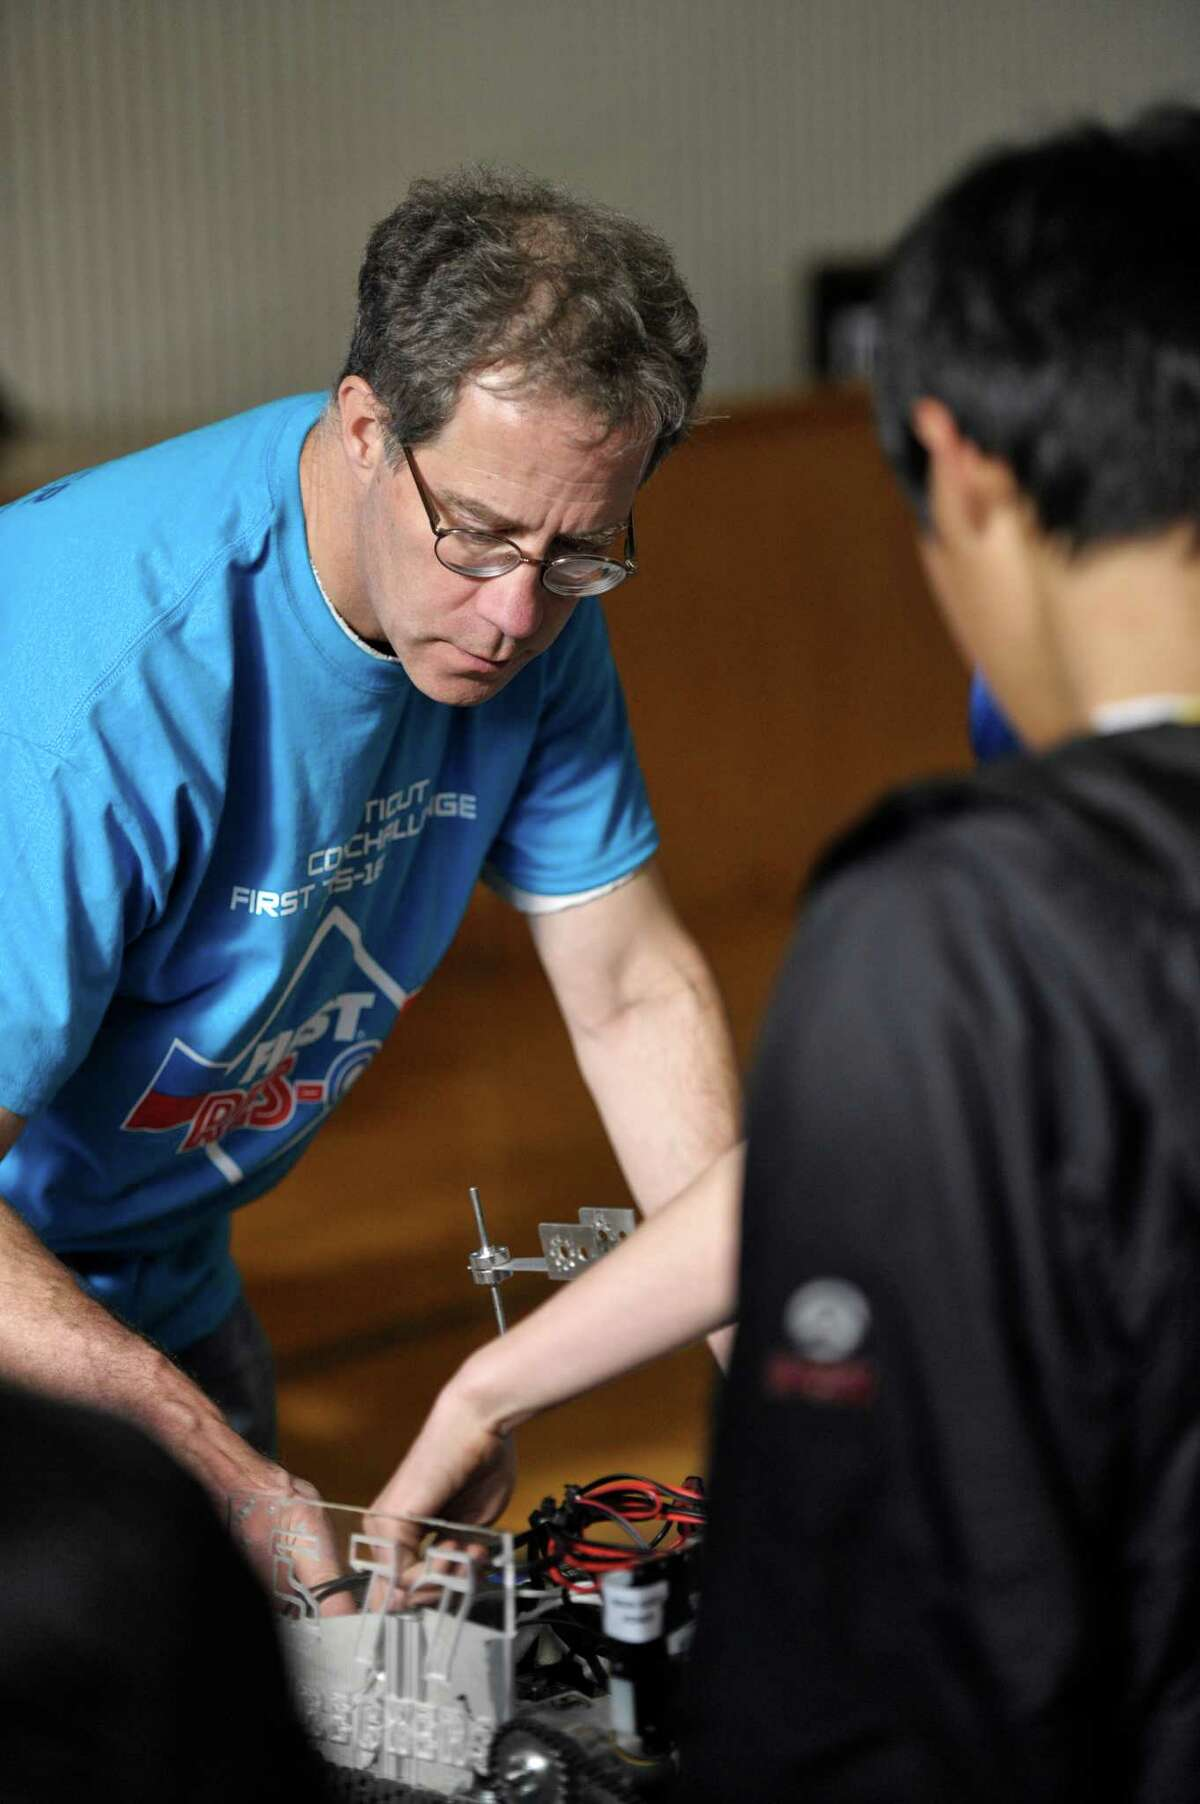 George Riehm, of New Fairfield, inspects a robot before the Connecticut FIRST Tech Challenge (FTC) robotics qualifying event, held at Ridgefield Academy. Riehm is a mentor for a team from Danbury but also volunteers with the competition. Saturday, November 21, 2015, in Ridgefield, Conn.